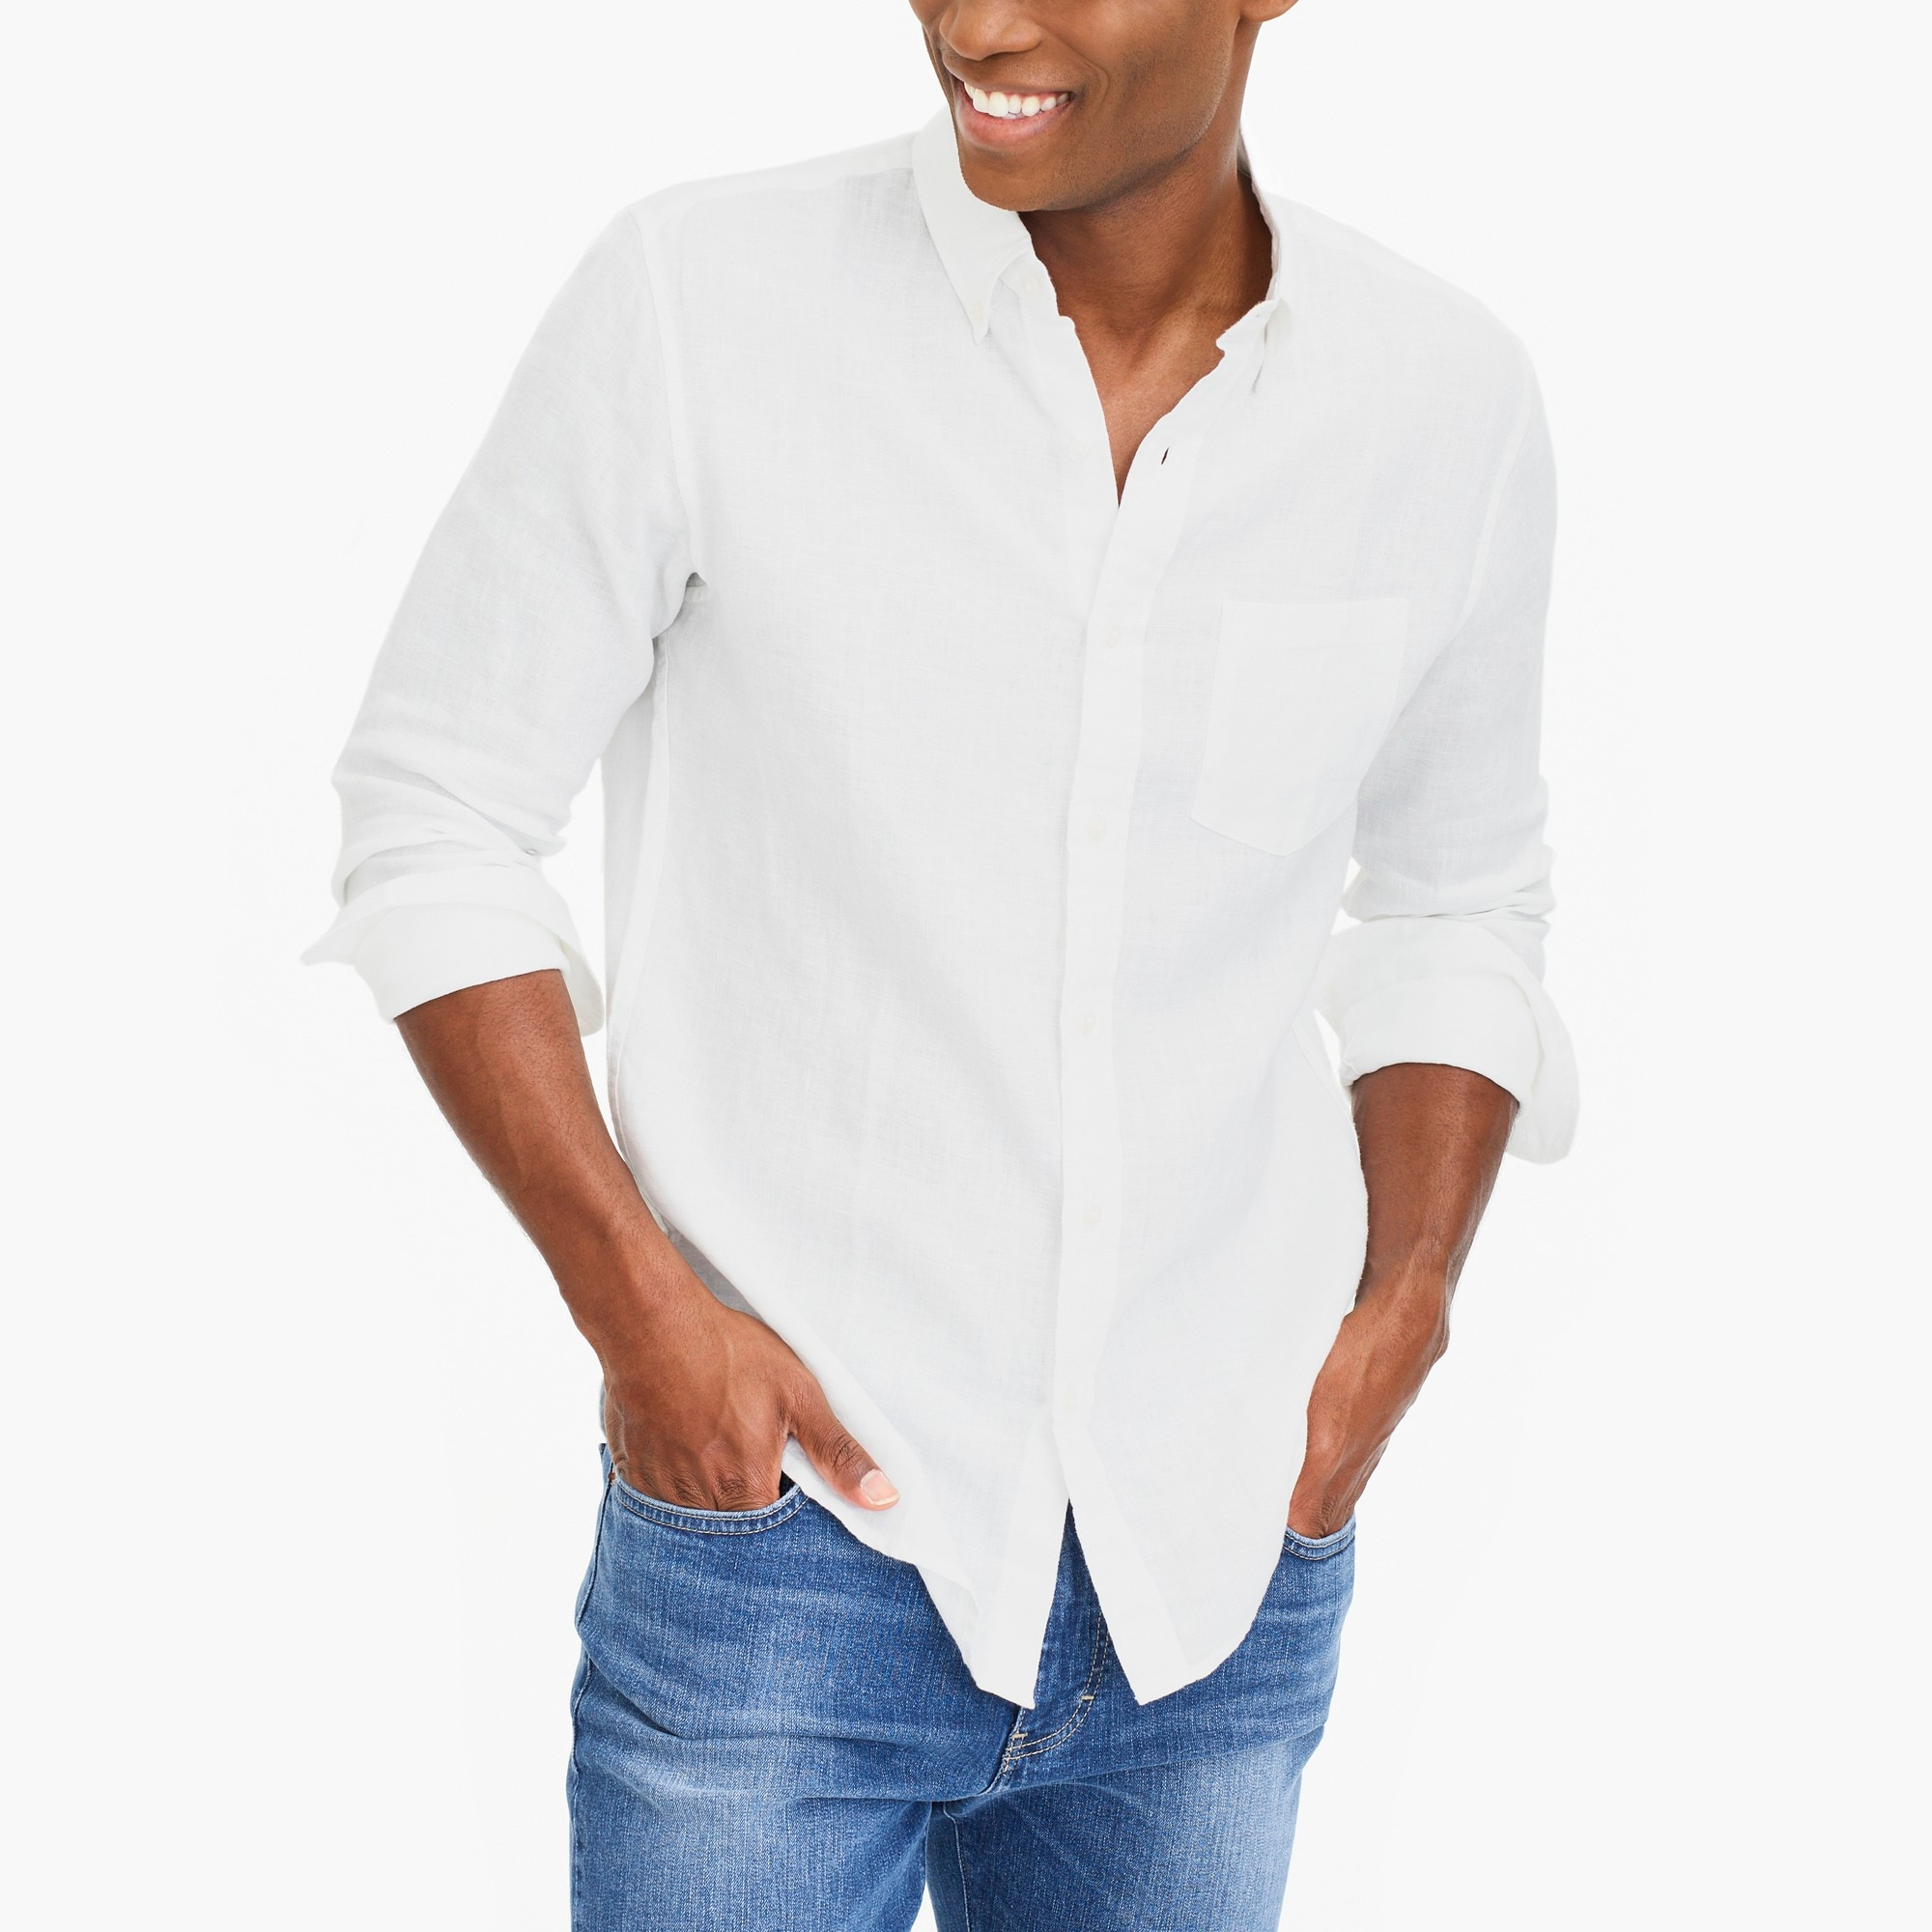 Image 1 for Linen shirt